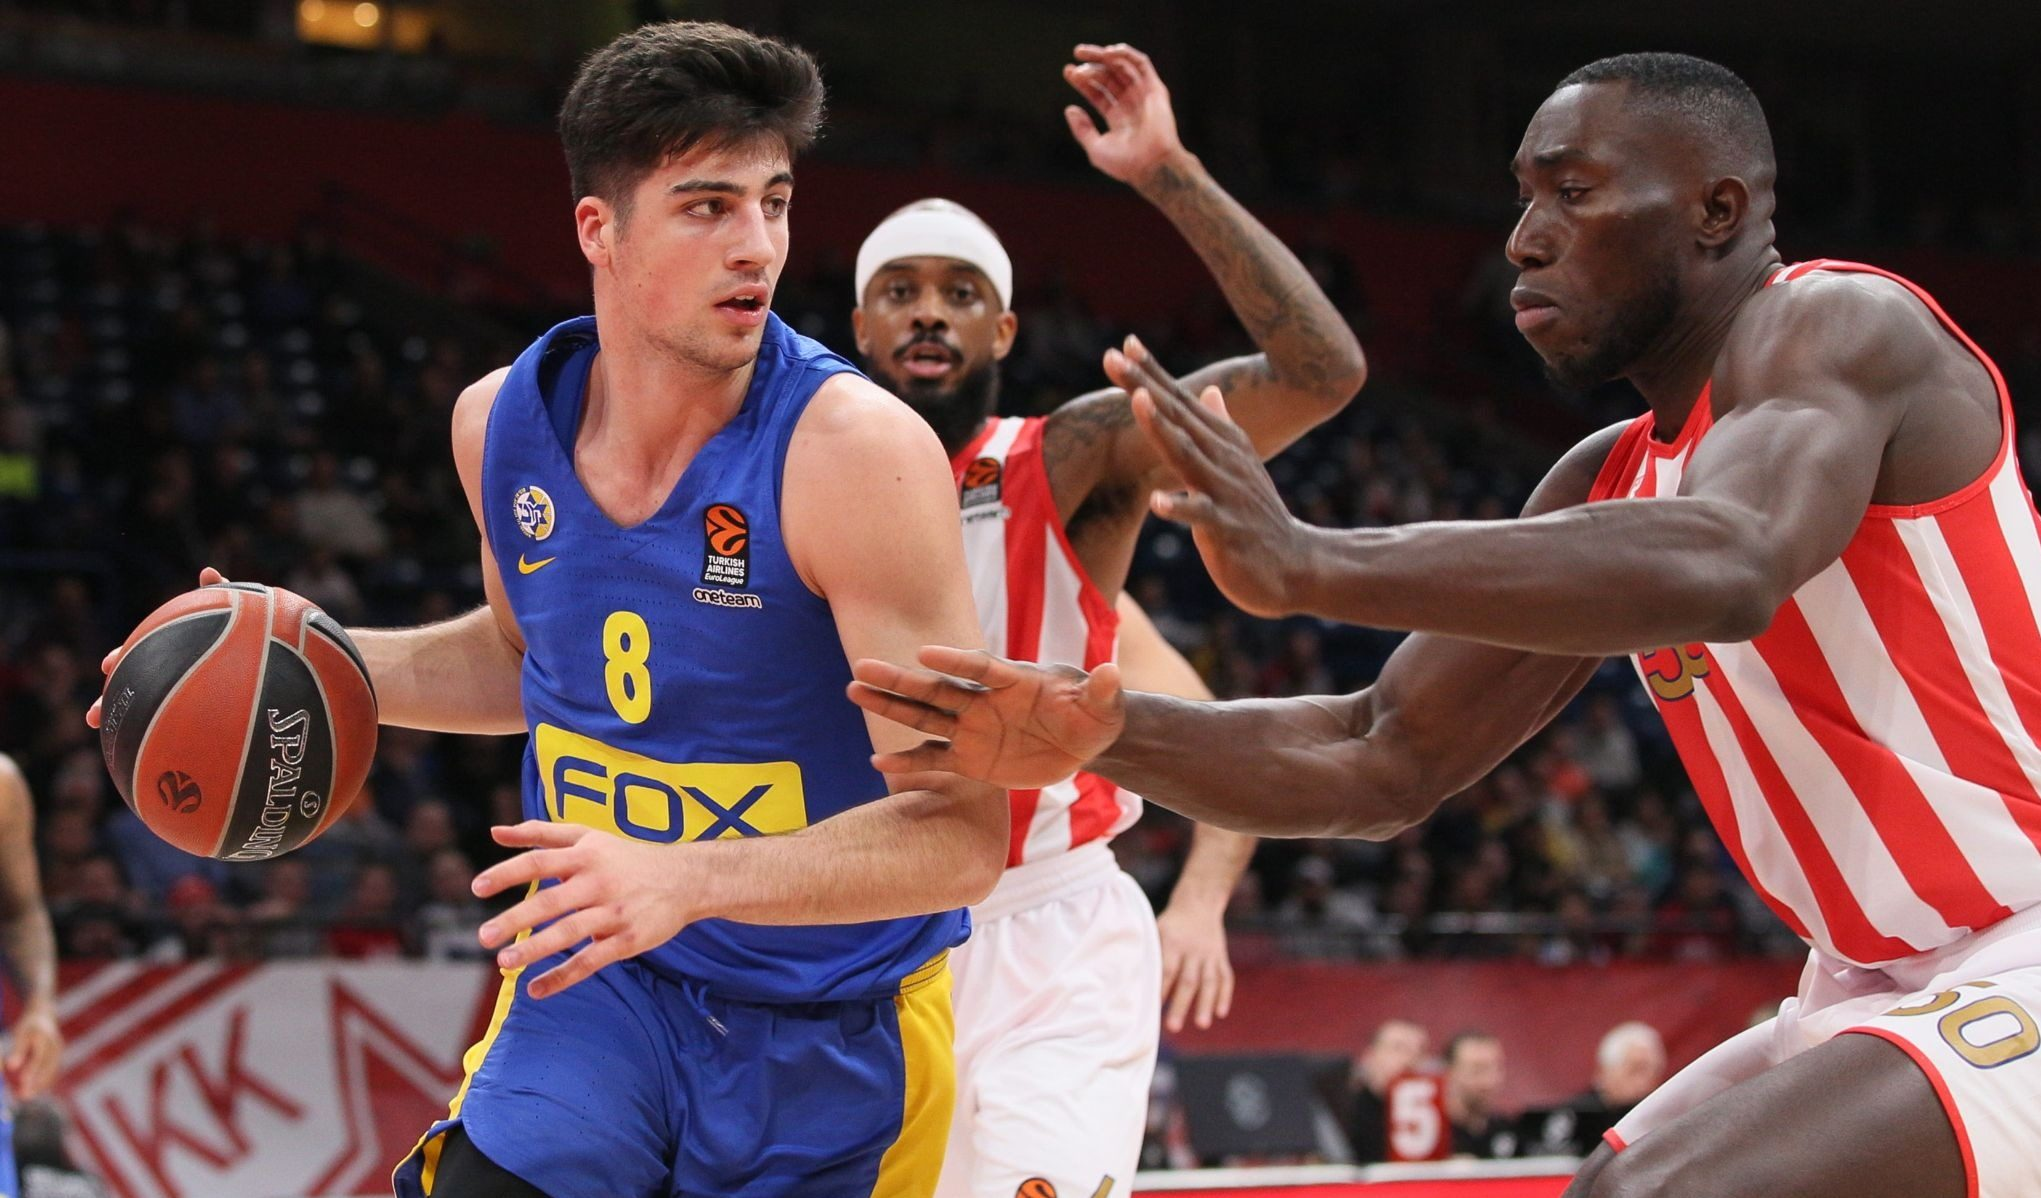 Deni Avdija (left) of Maccabi Tel Aviv handles the ball against the Serbian team Crvena Zvezda in a EuroLeague game in Belgrade, March 6, 2020. (Photo/JTA-Marko Metlas-Euroleague Basketball via Getty Images)